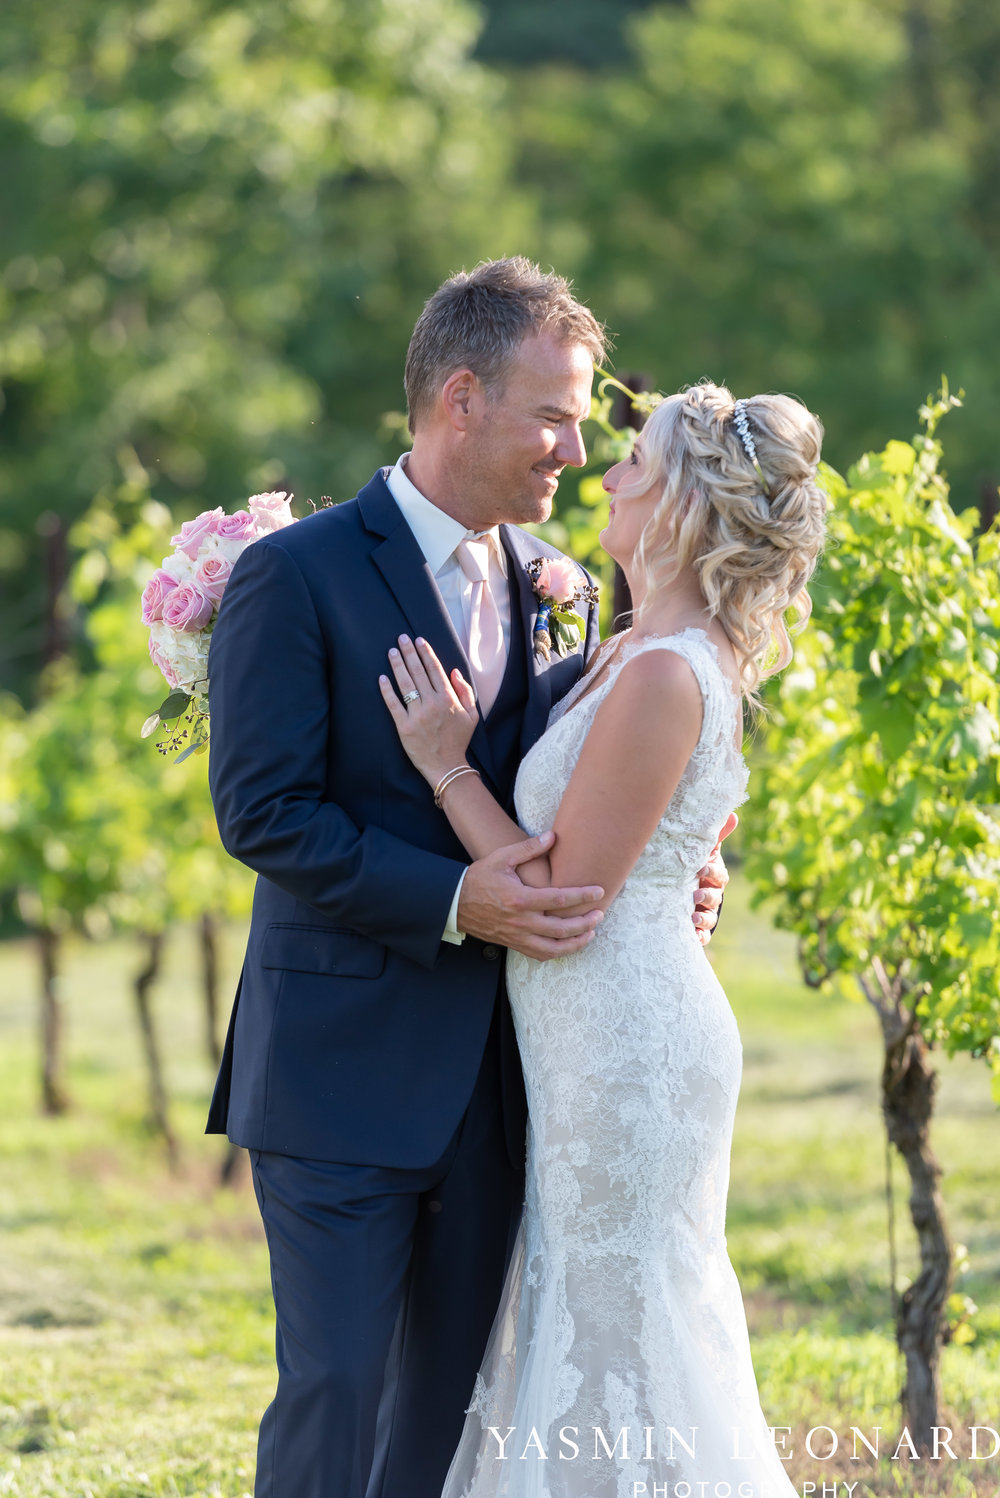 Elkin Creek Vineyard - Elkin Creek Weddings - NC Wine - NC Wineries - NC Weddings - NC Photographers - NC Wedding Photographer - NC Winery Wedding Ideas - Yasmin Leonard Photography - High Point Wedding Photographer-56.jpg